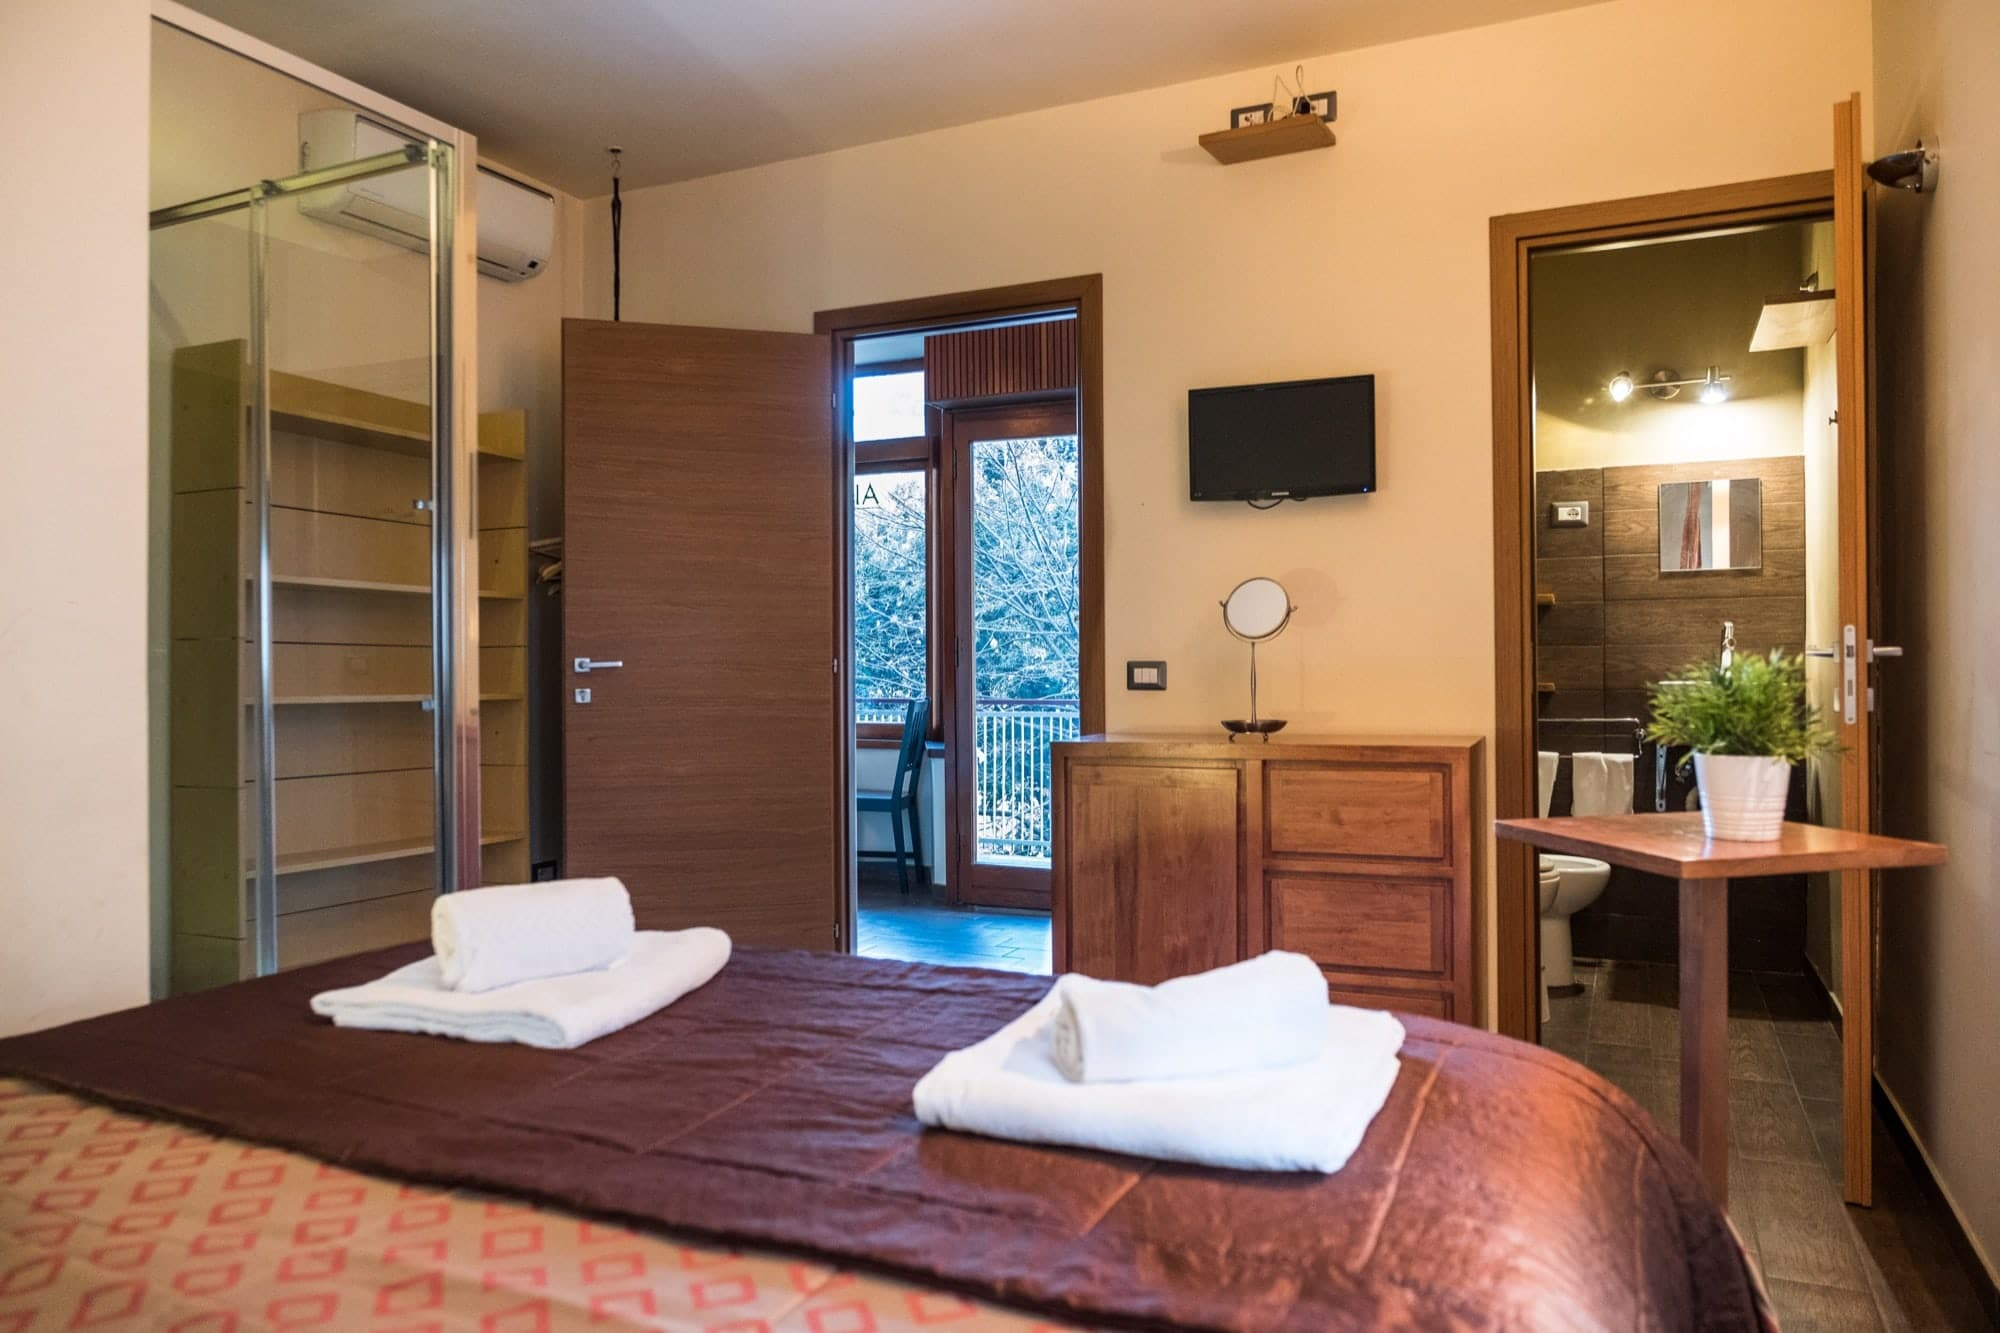 B&B Trastevere - Double Room